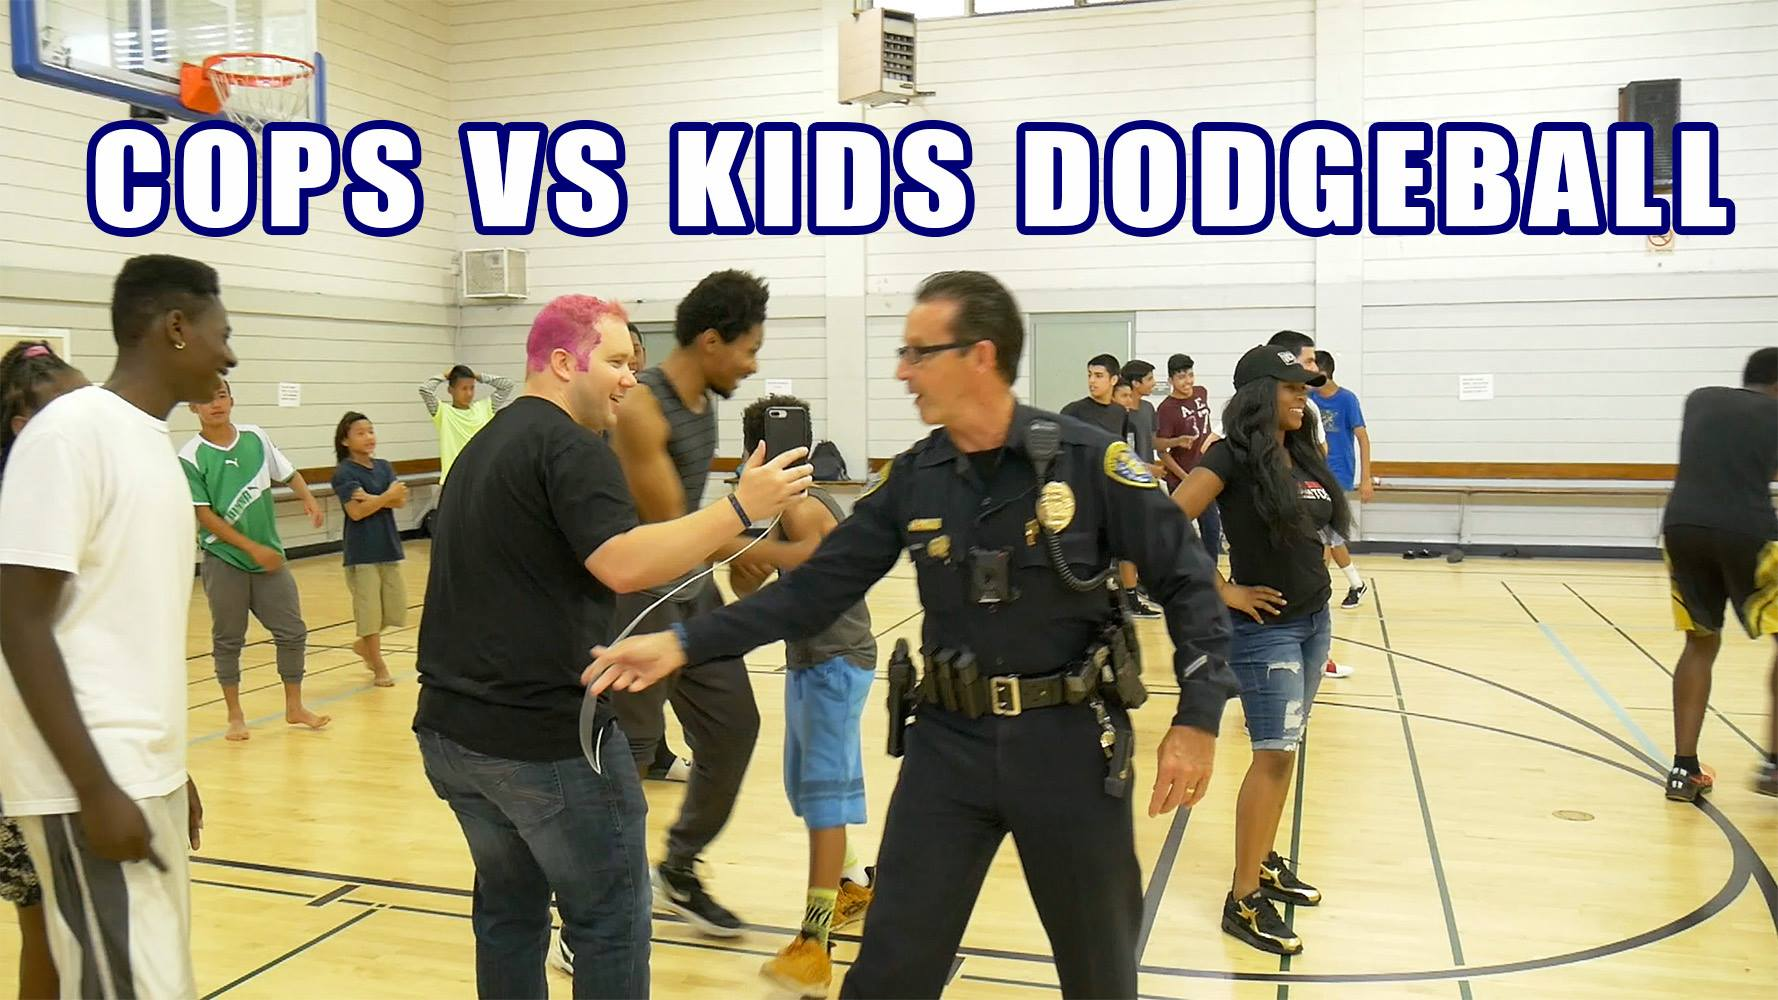 Cops vs Kids Dodgeball w/ Project Human